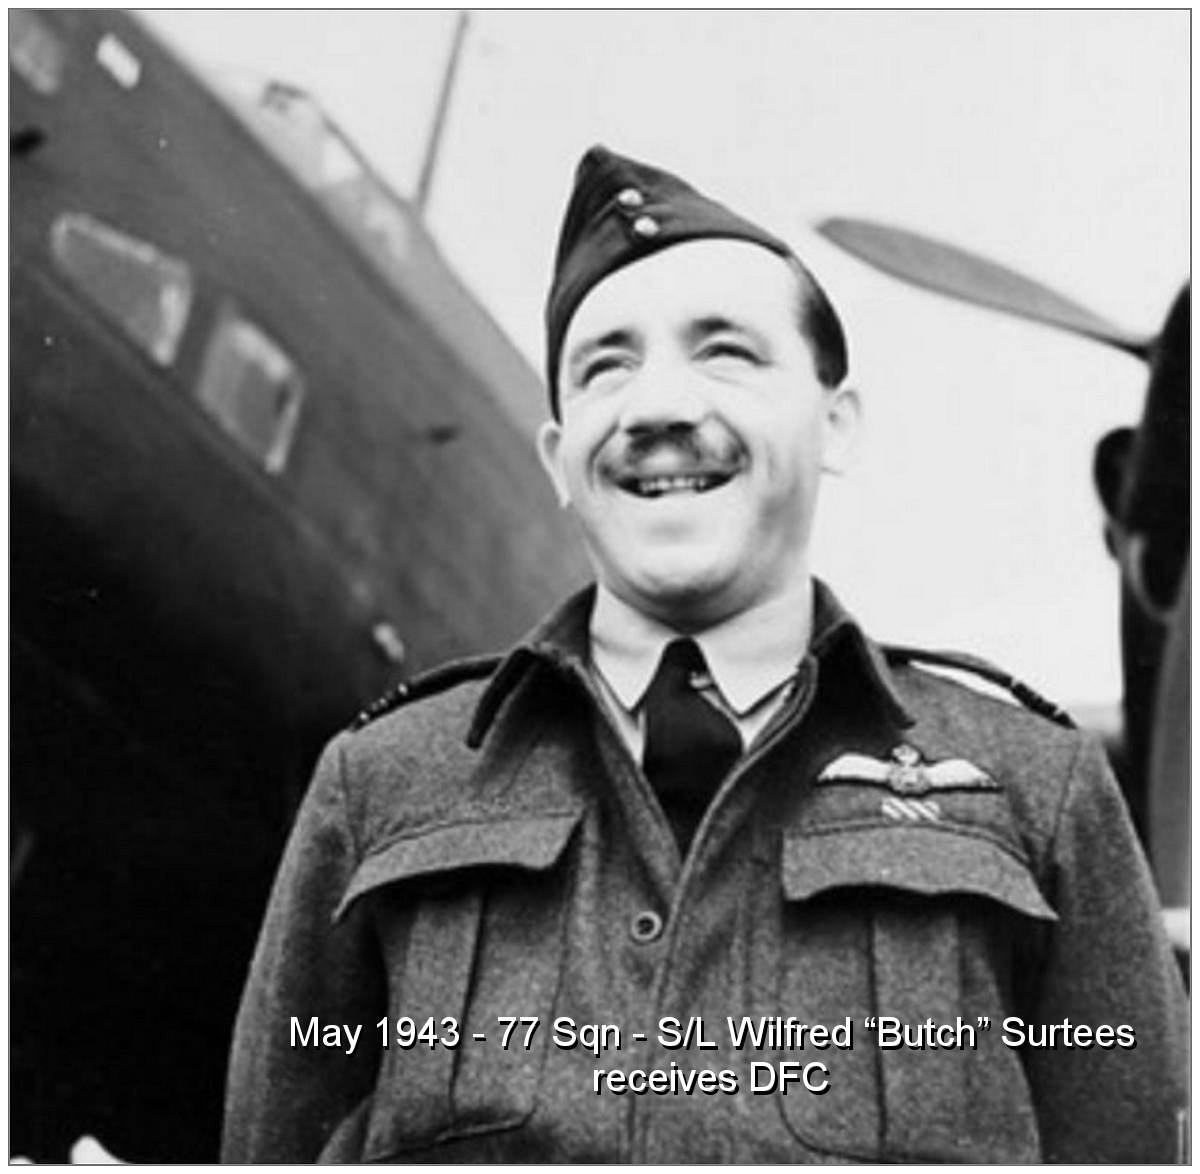 Squadron Leader - Pilot - Wilfred 'Butch' Surtees - 14 May 1943 - DFC